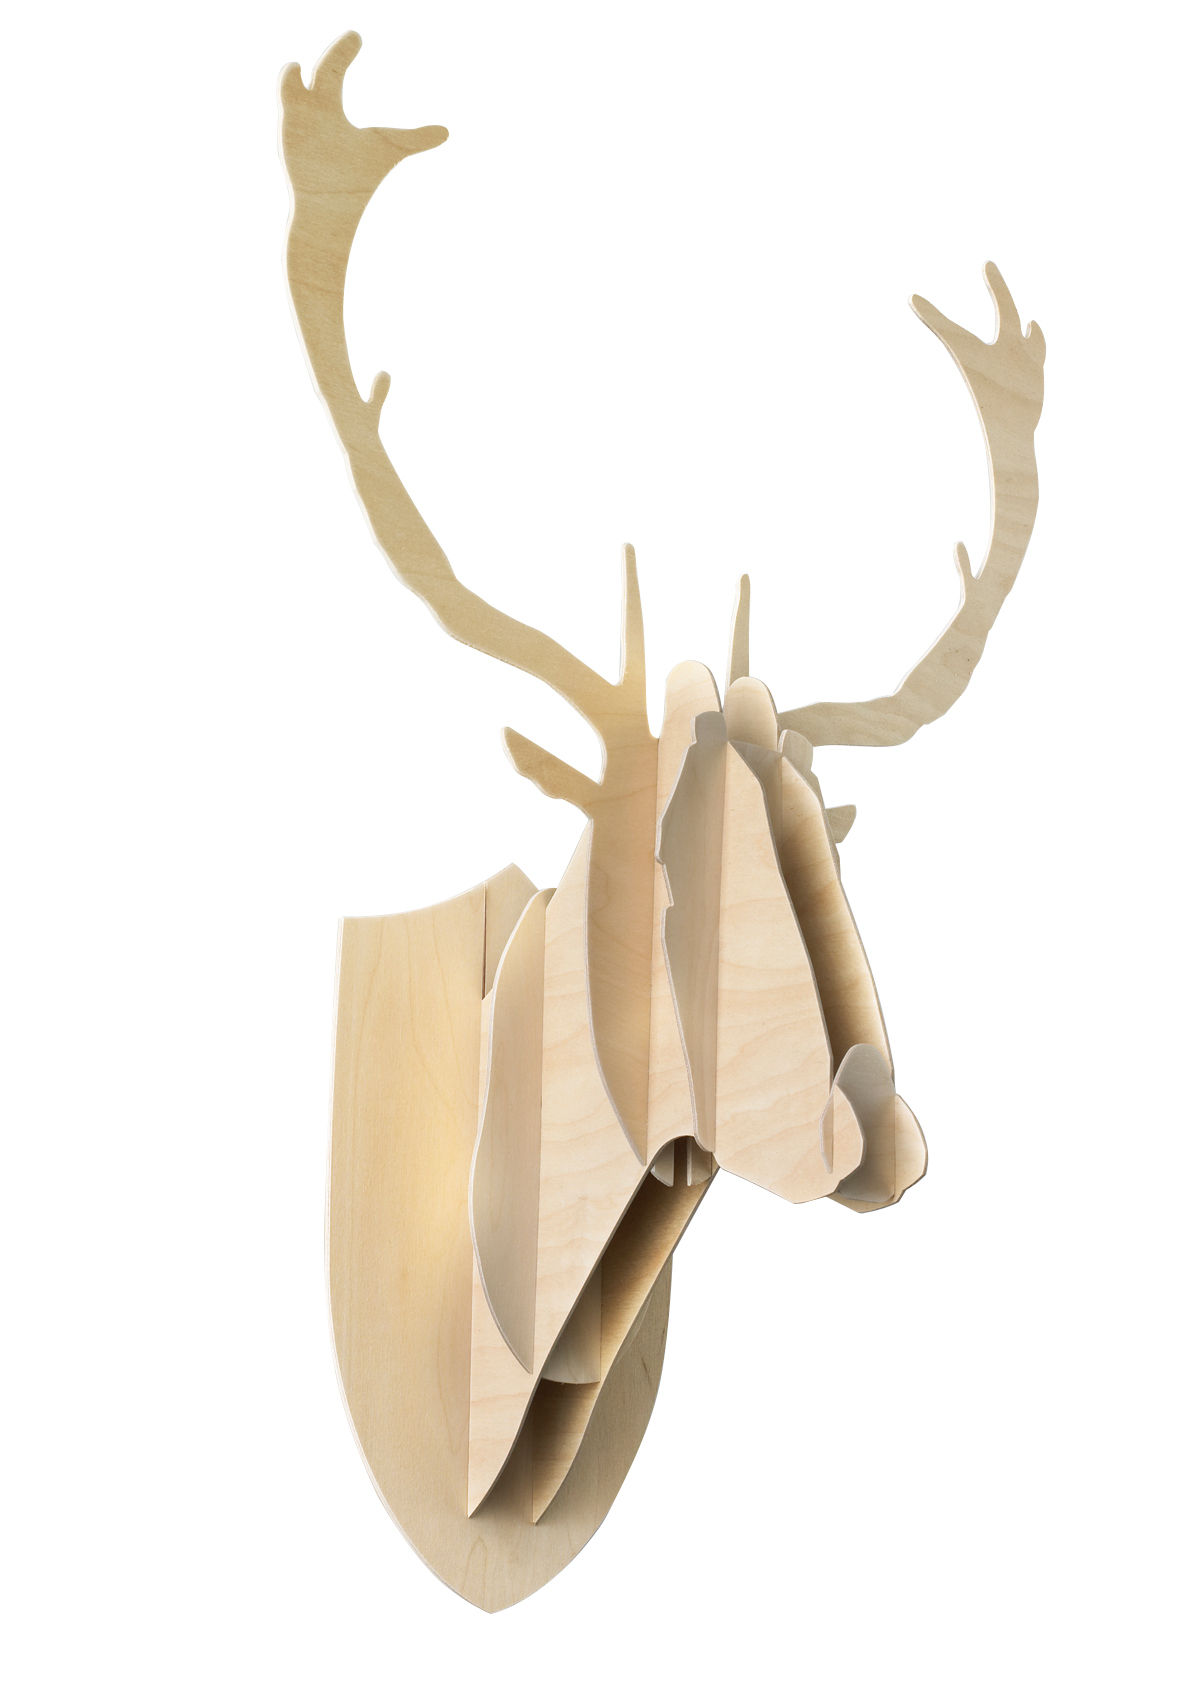 Decoration - Funny & surprising - Trophy - Deer - H 70 cm by Moustache - Natural wood - Birch plywood